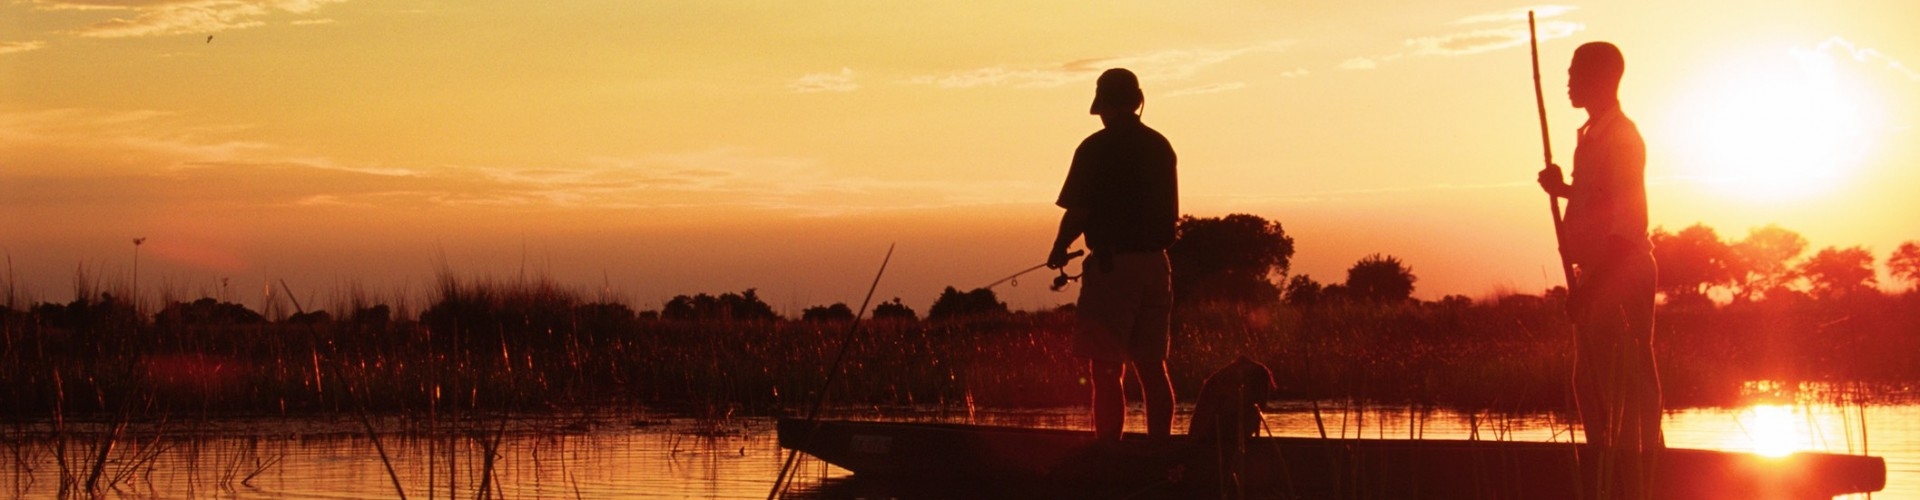 Africa - Botswana - Footsteps fishing